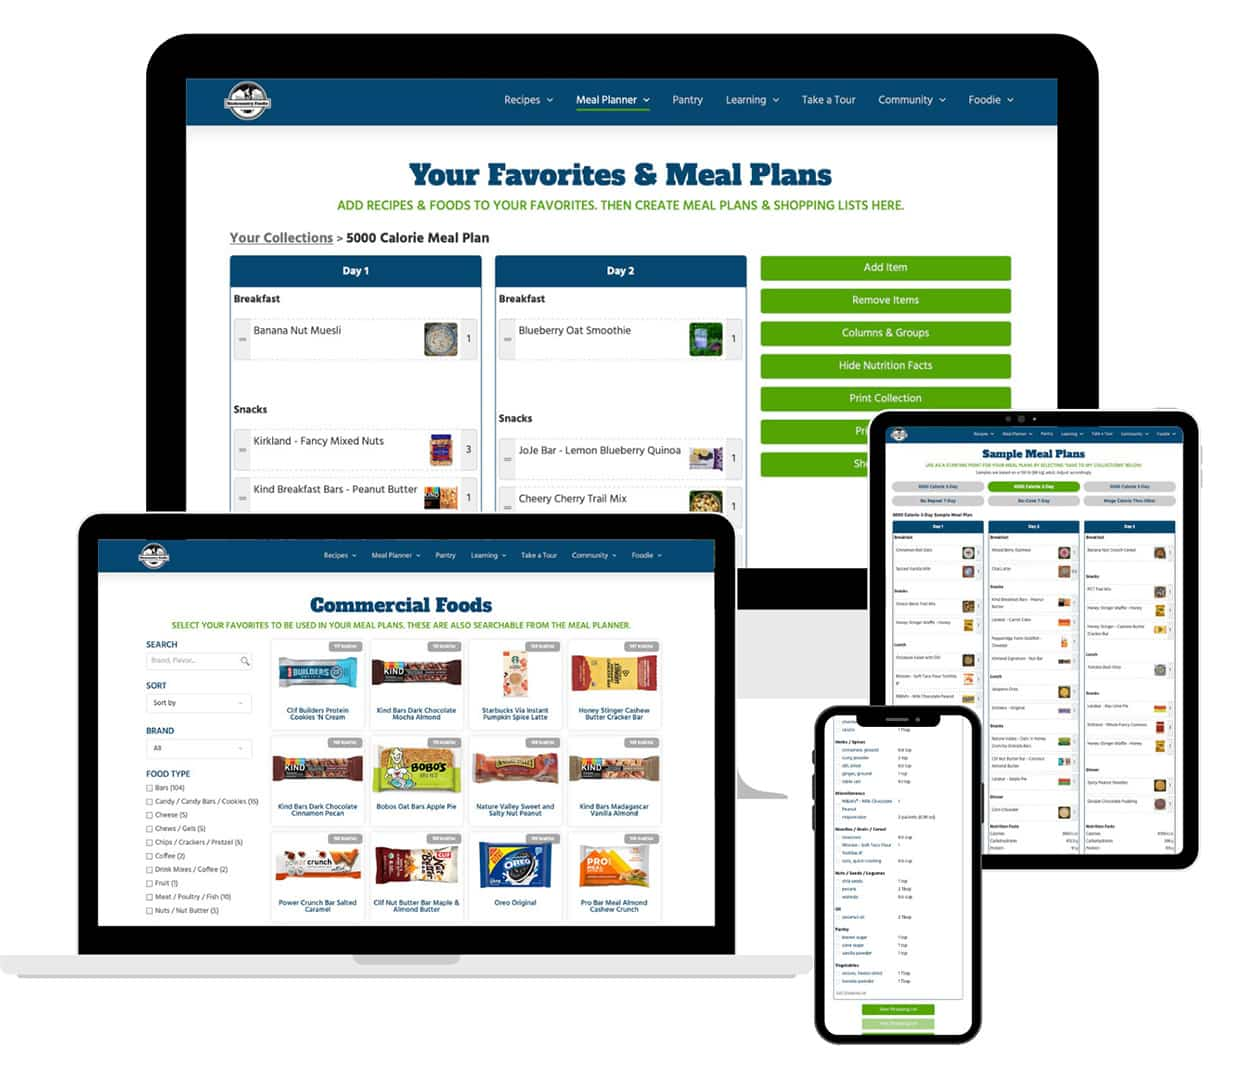 Meal Planner Commercial Foods Sample Meal Plans Shopping List